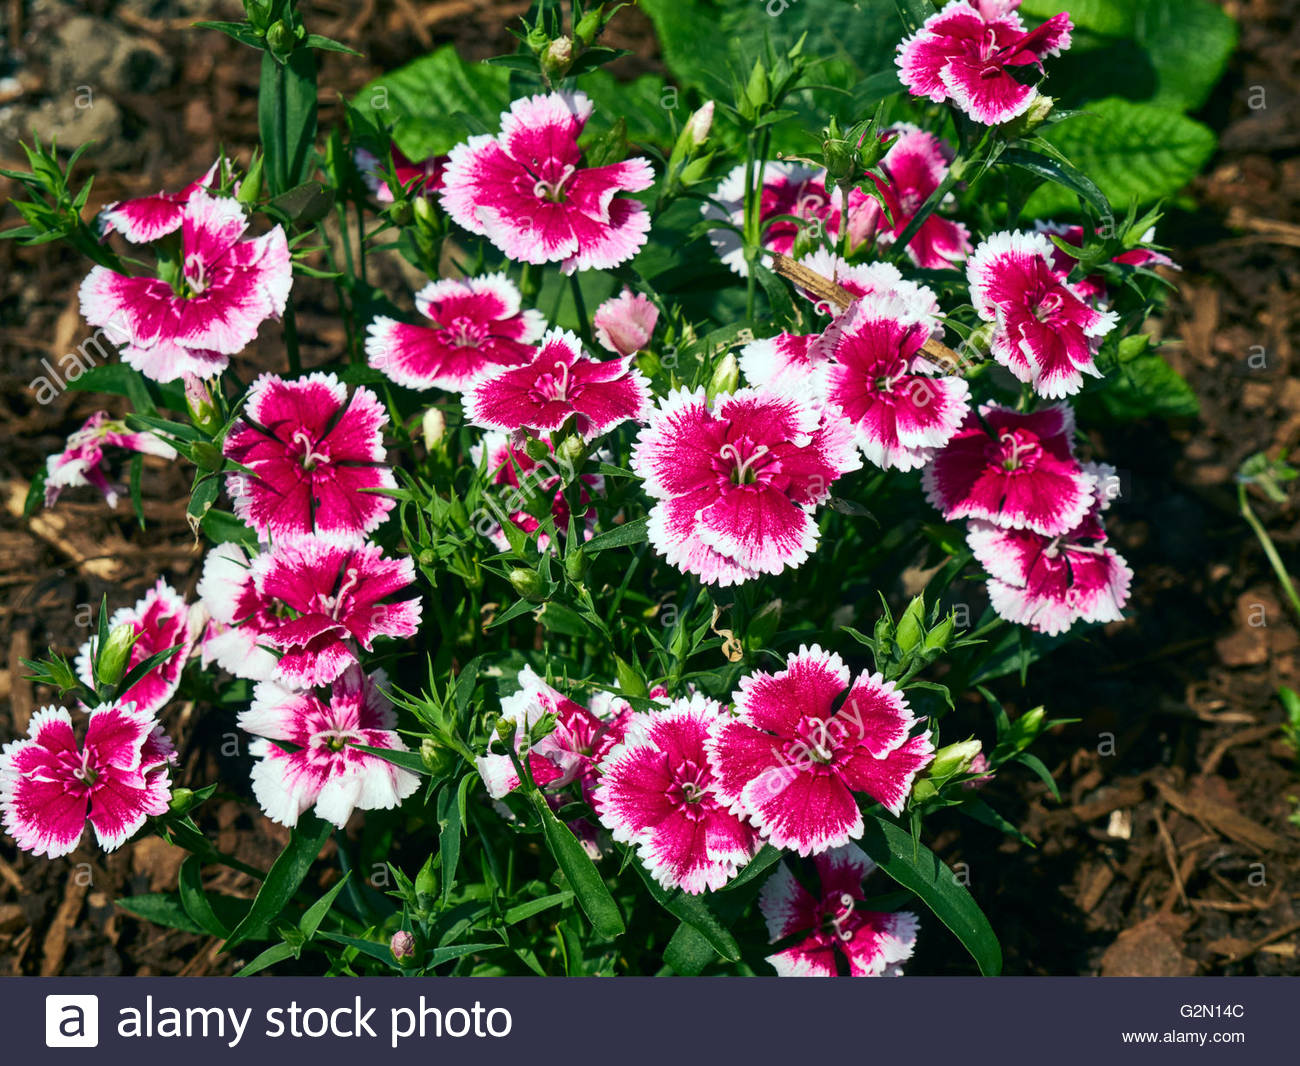 A pink and white dwarf dianthus barbatus sweet williams garden plant - Stock Image